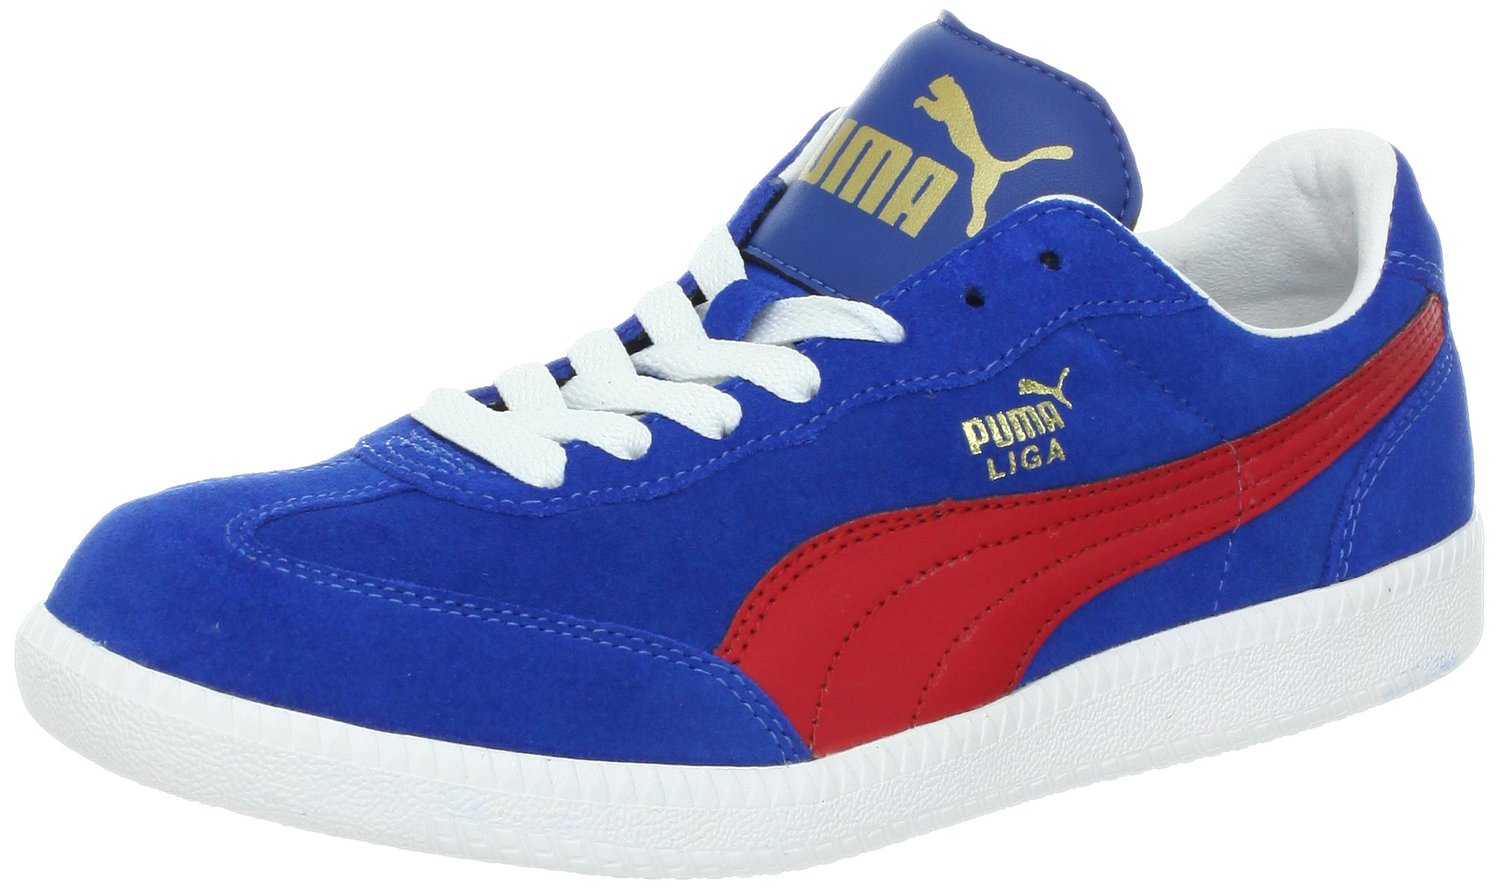 Puma White Blue Red Soccer Shoes